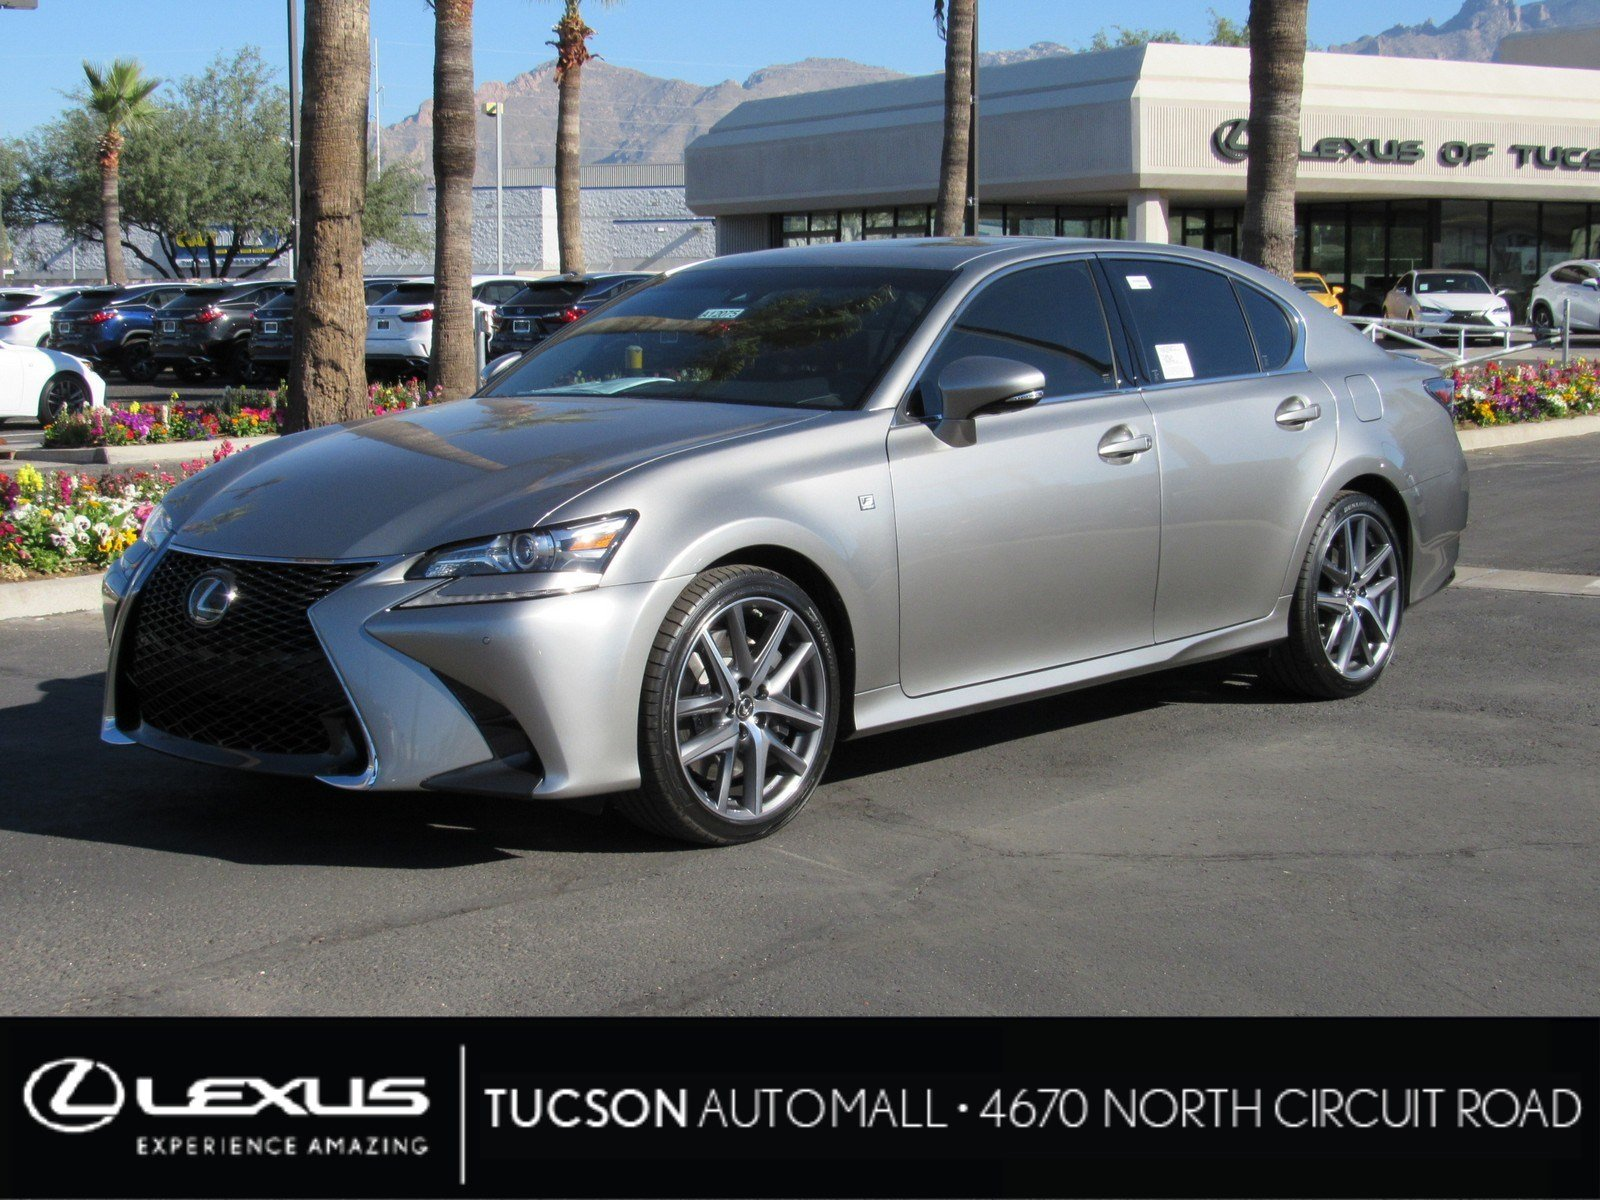 New 2019 Lexus GS GS 350 F SPORT 4dr Car in Tucson A